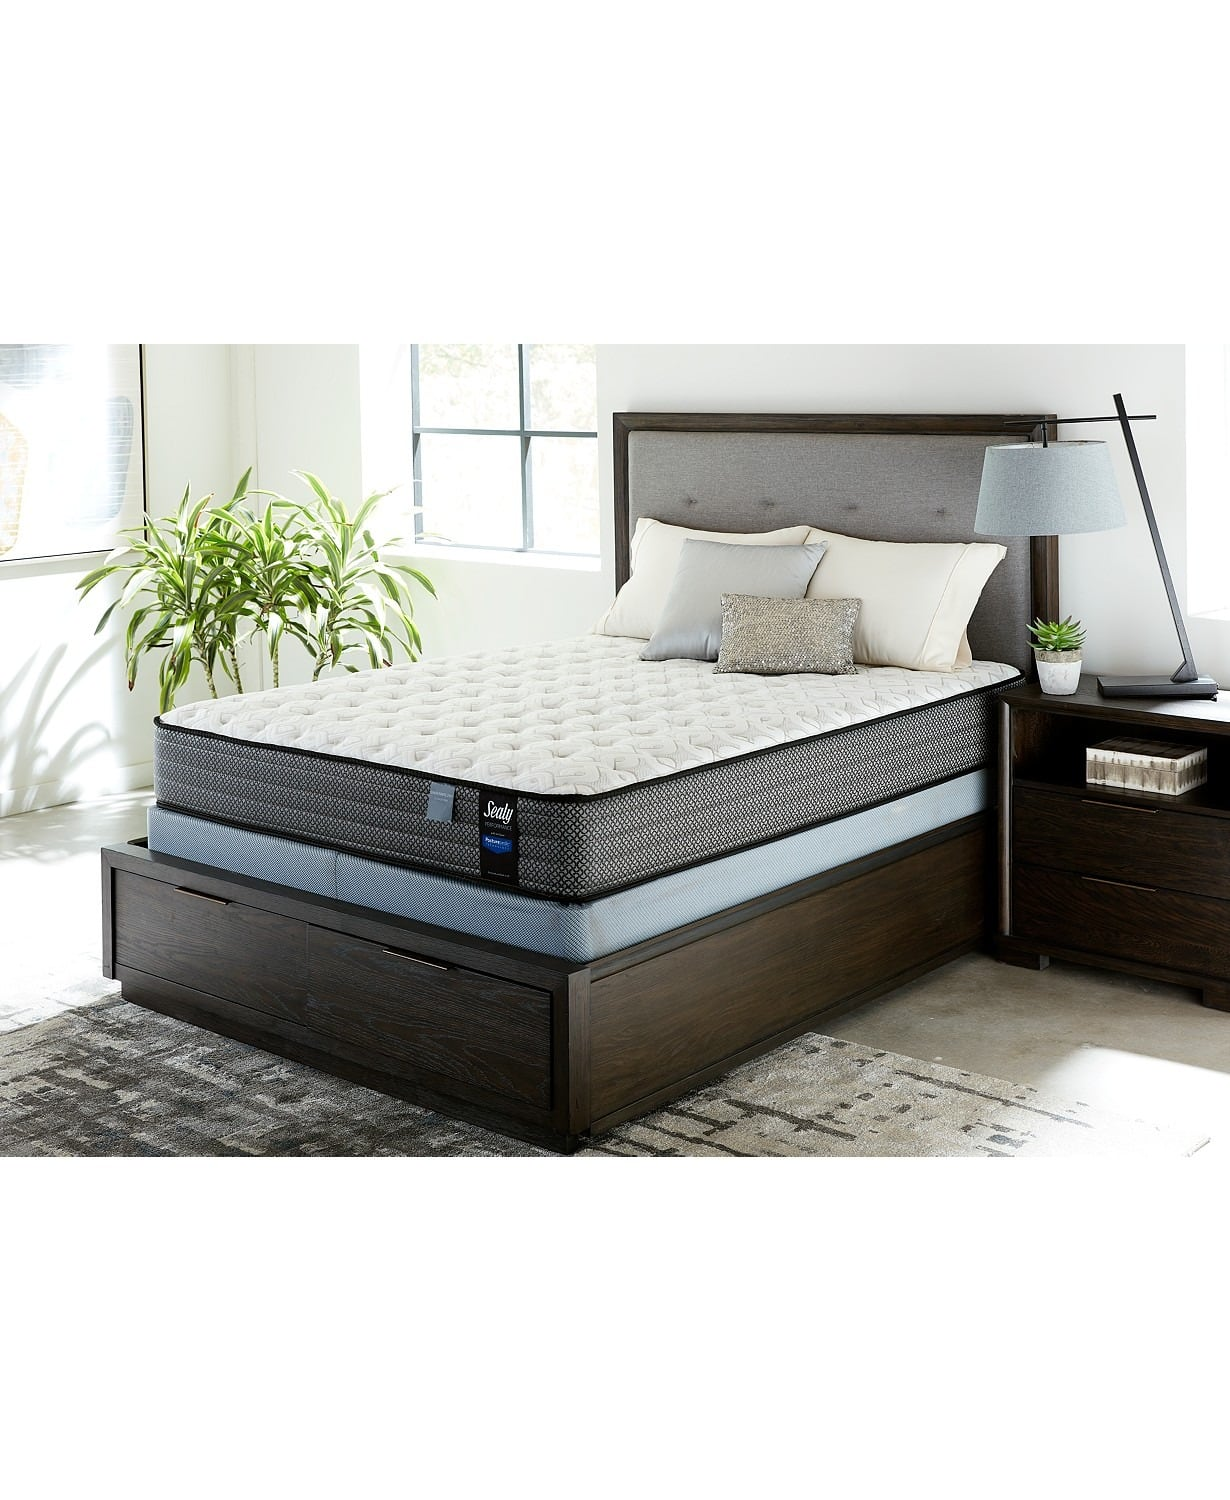 Sealy Posturepedic 11 Cushion Firm Queen Mattress Set 347 Full 14 Plush Pillow Top 837 King 947 More Fs On 787